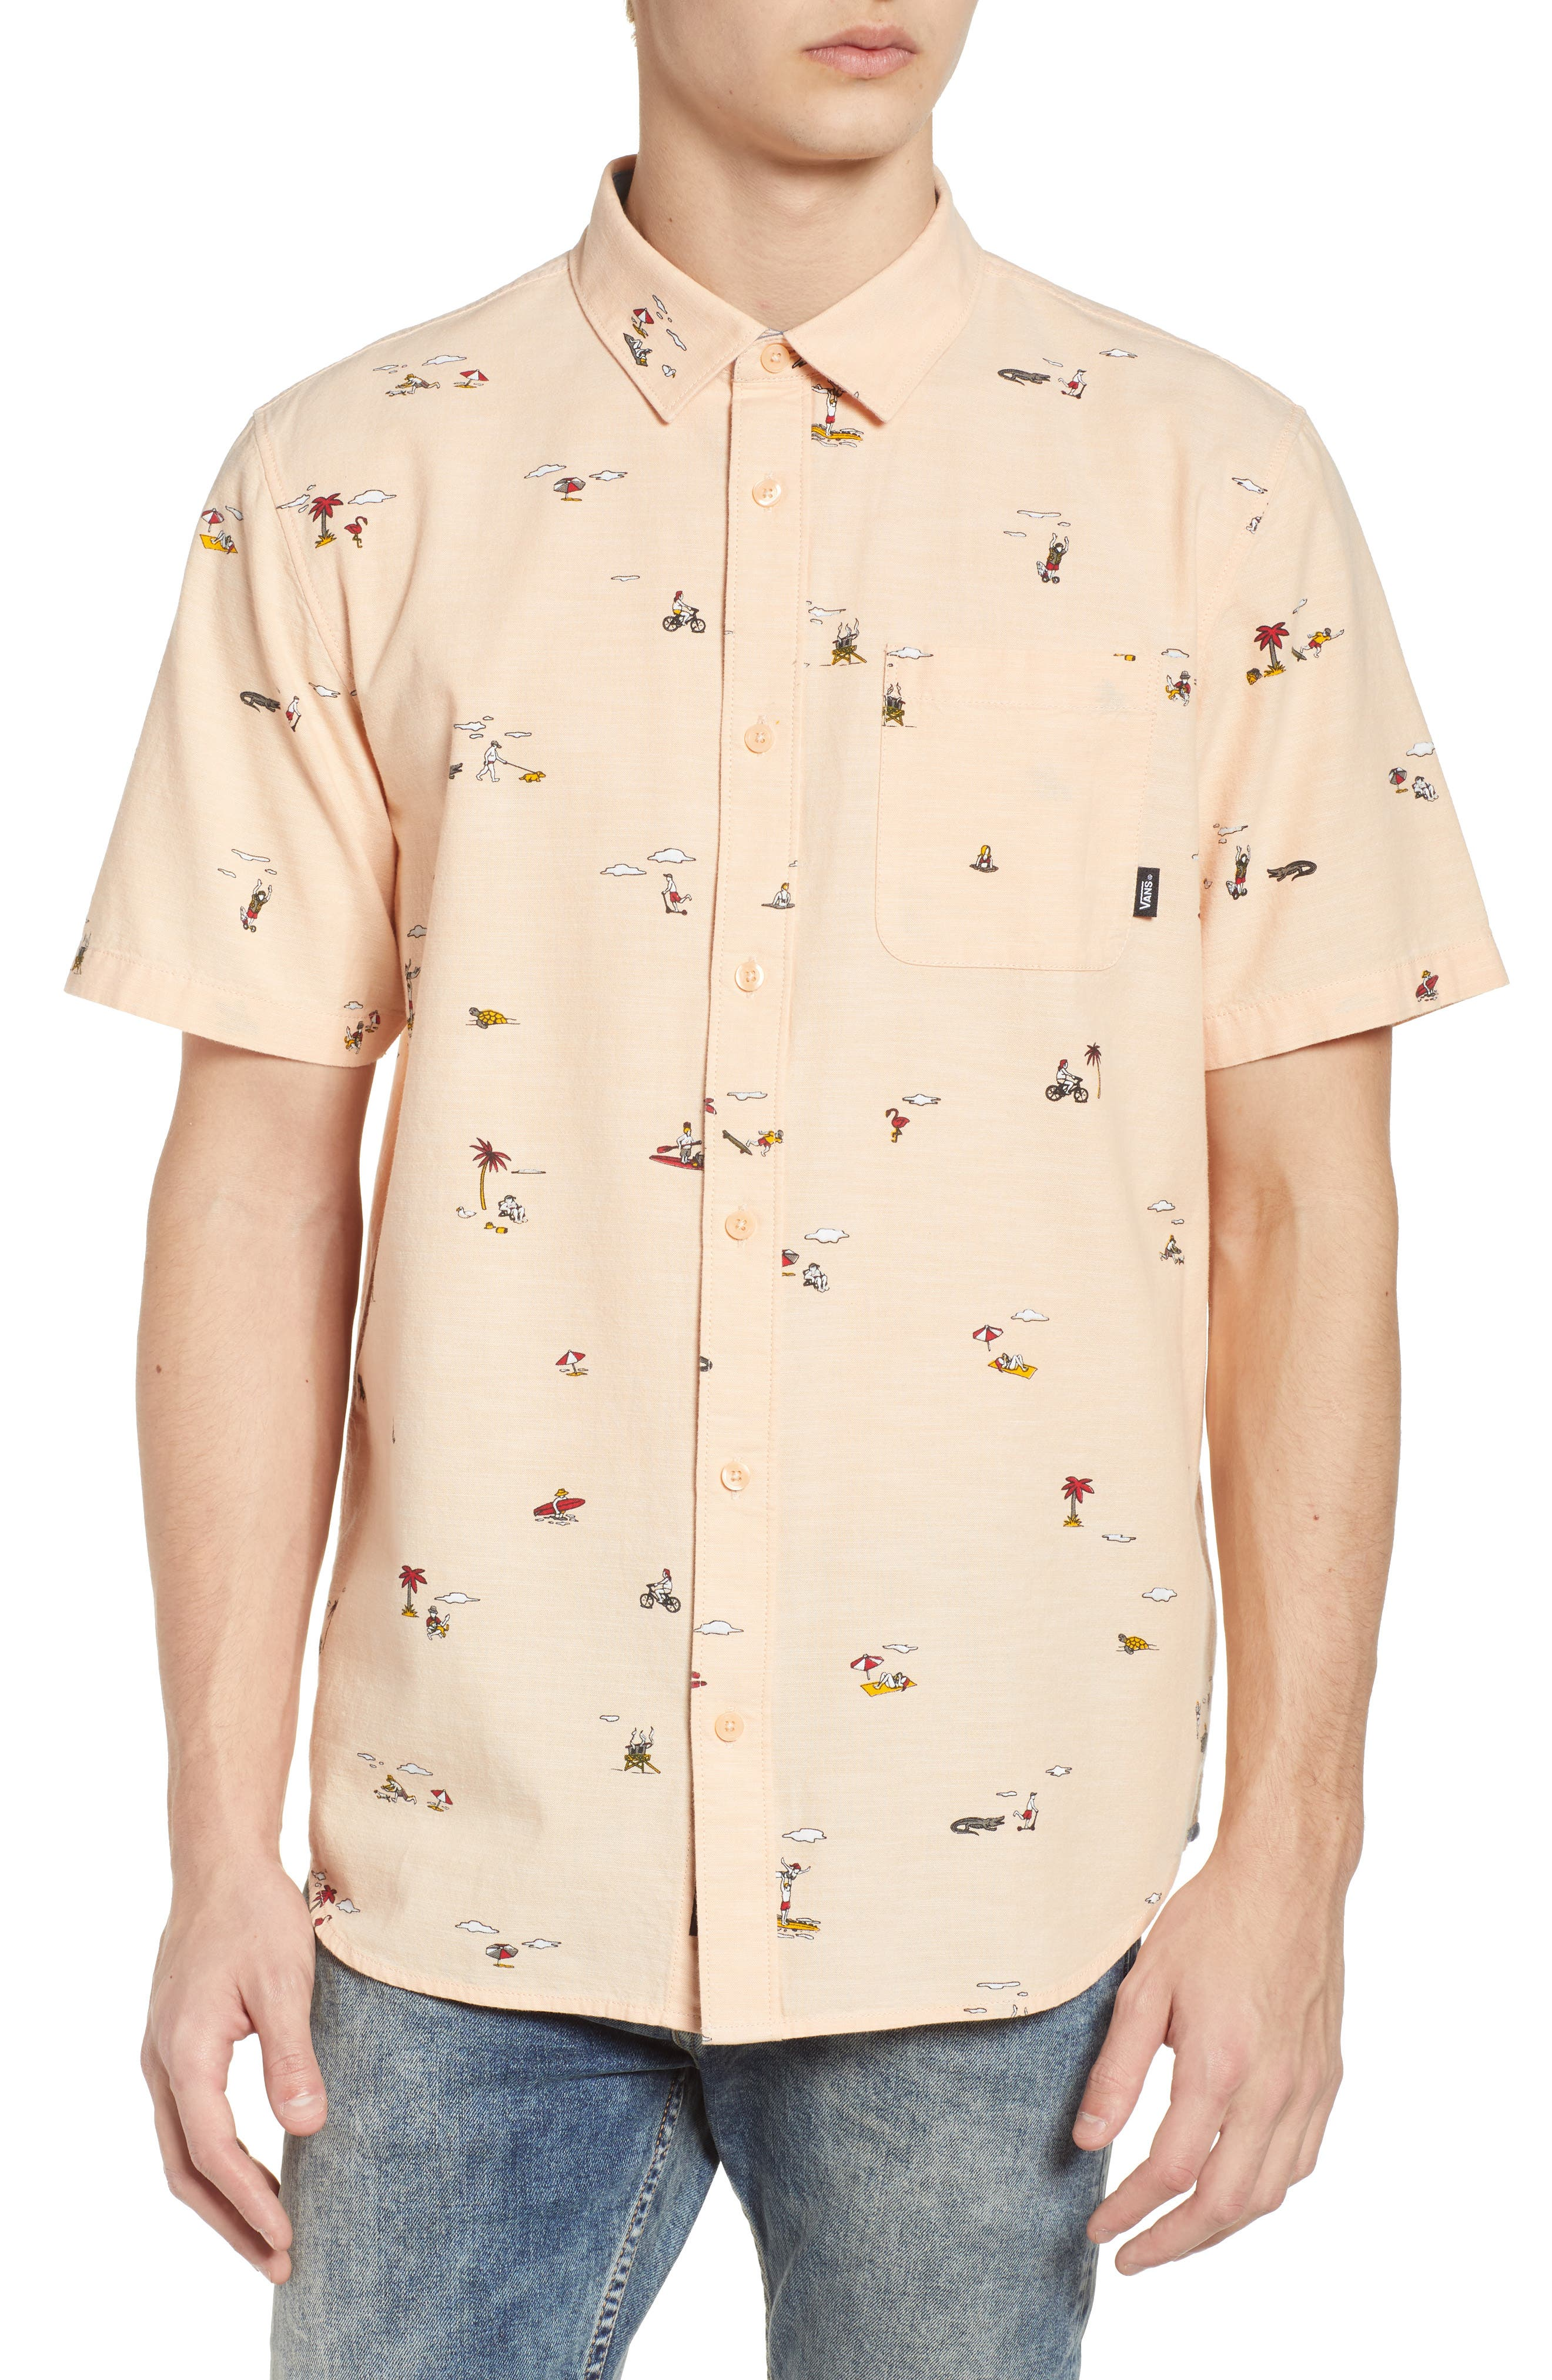 Tres Palmas Short Sleeve Shirt,                         Main,                         color,